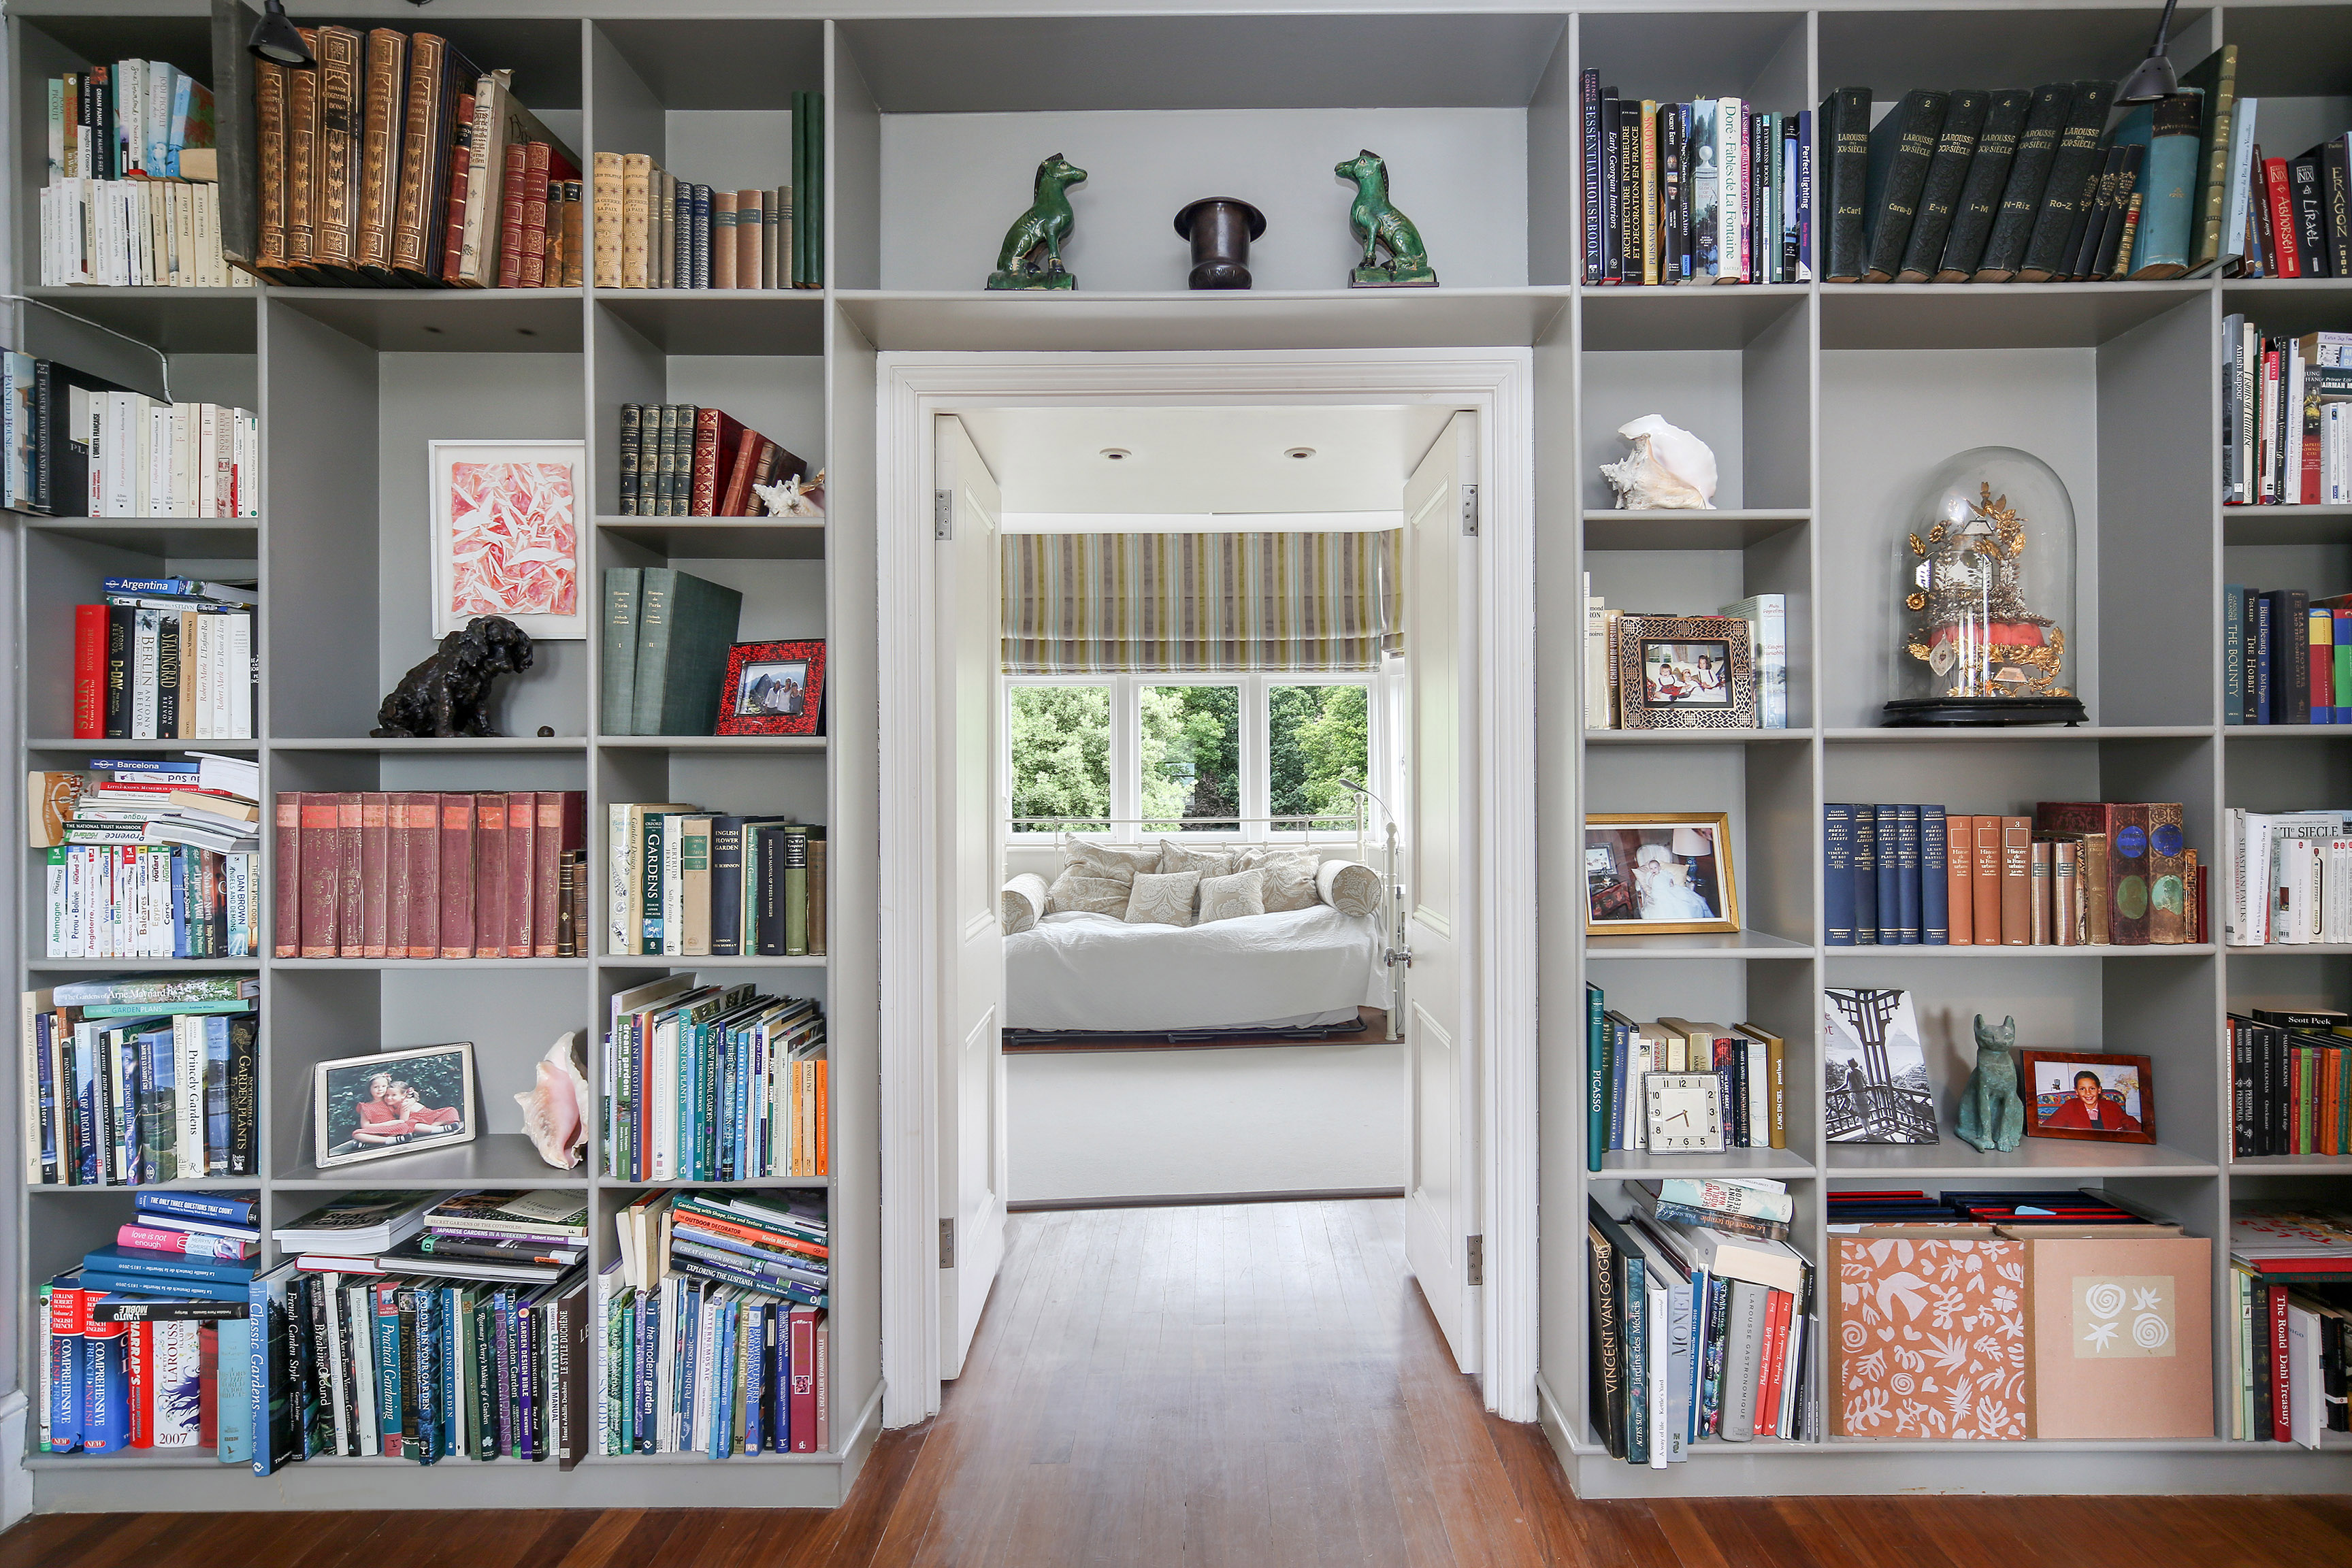 London property market forecast 2017 - image of built in bookcase